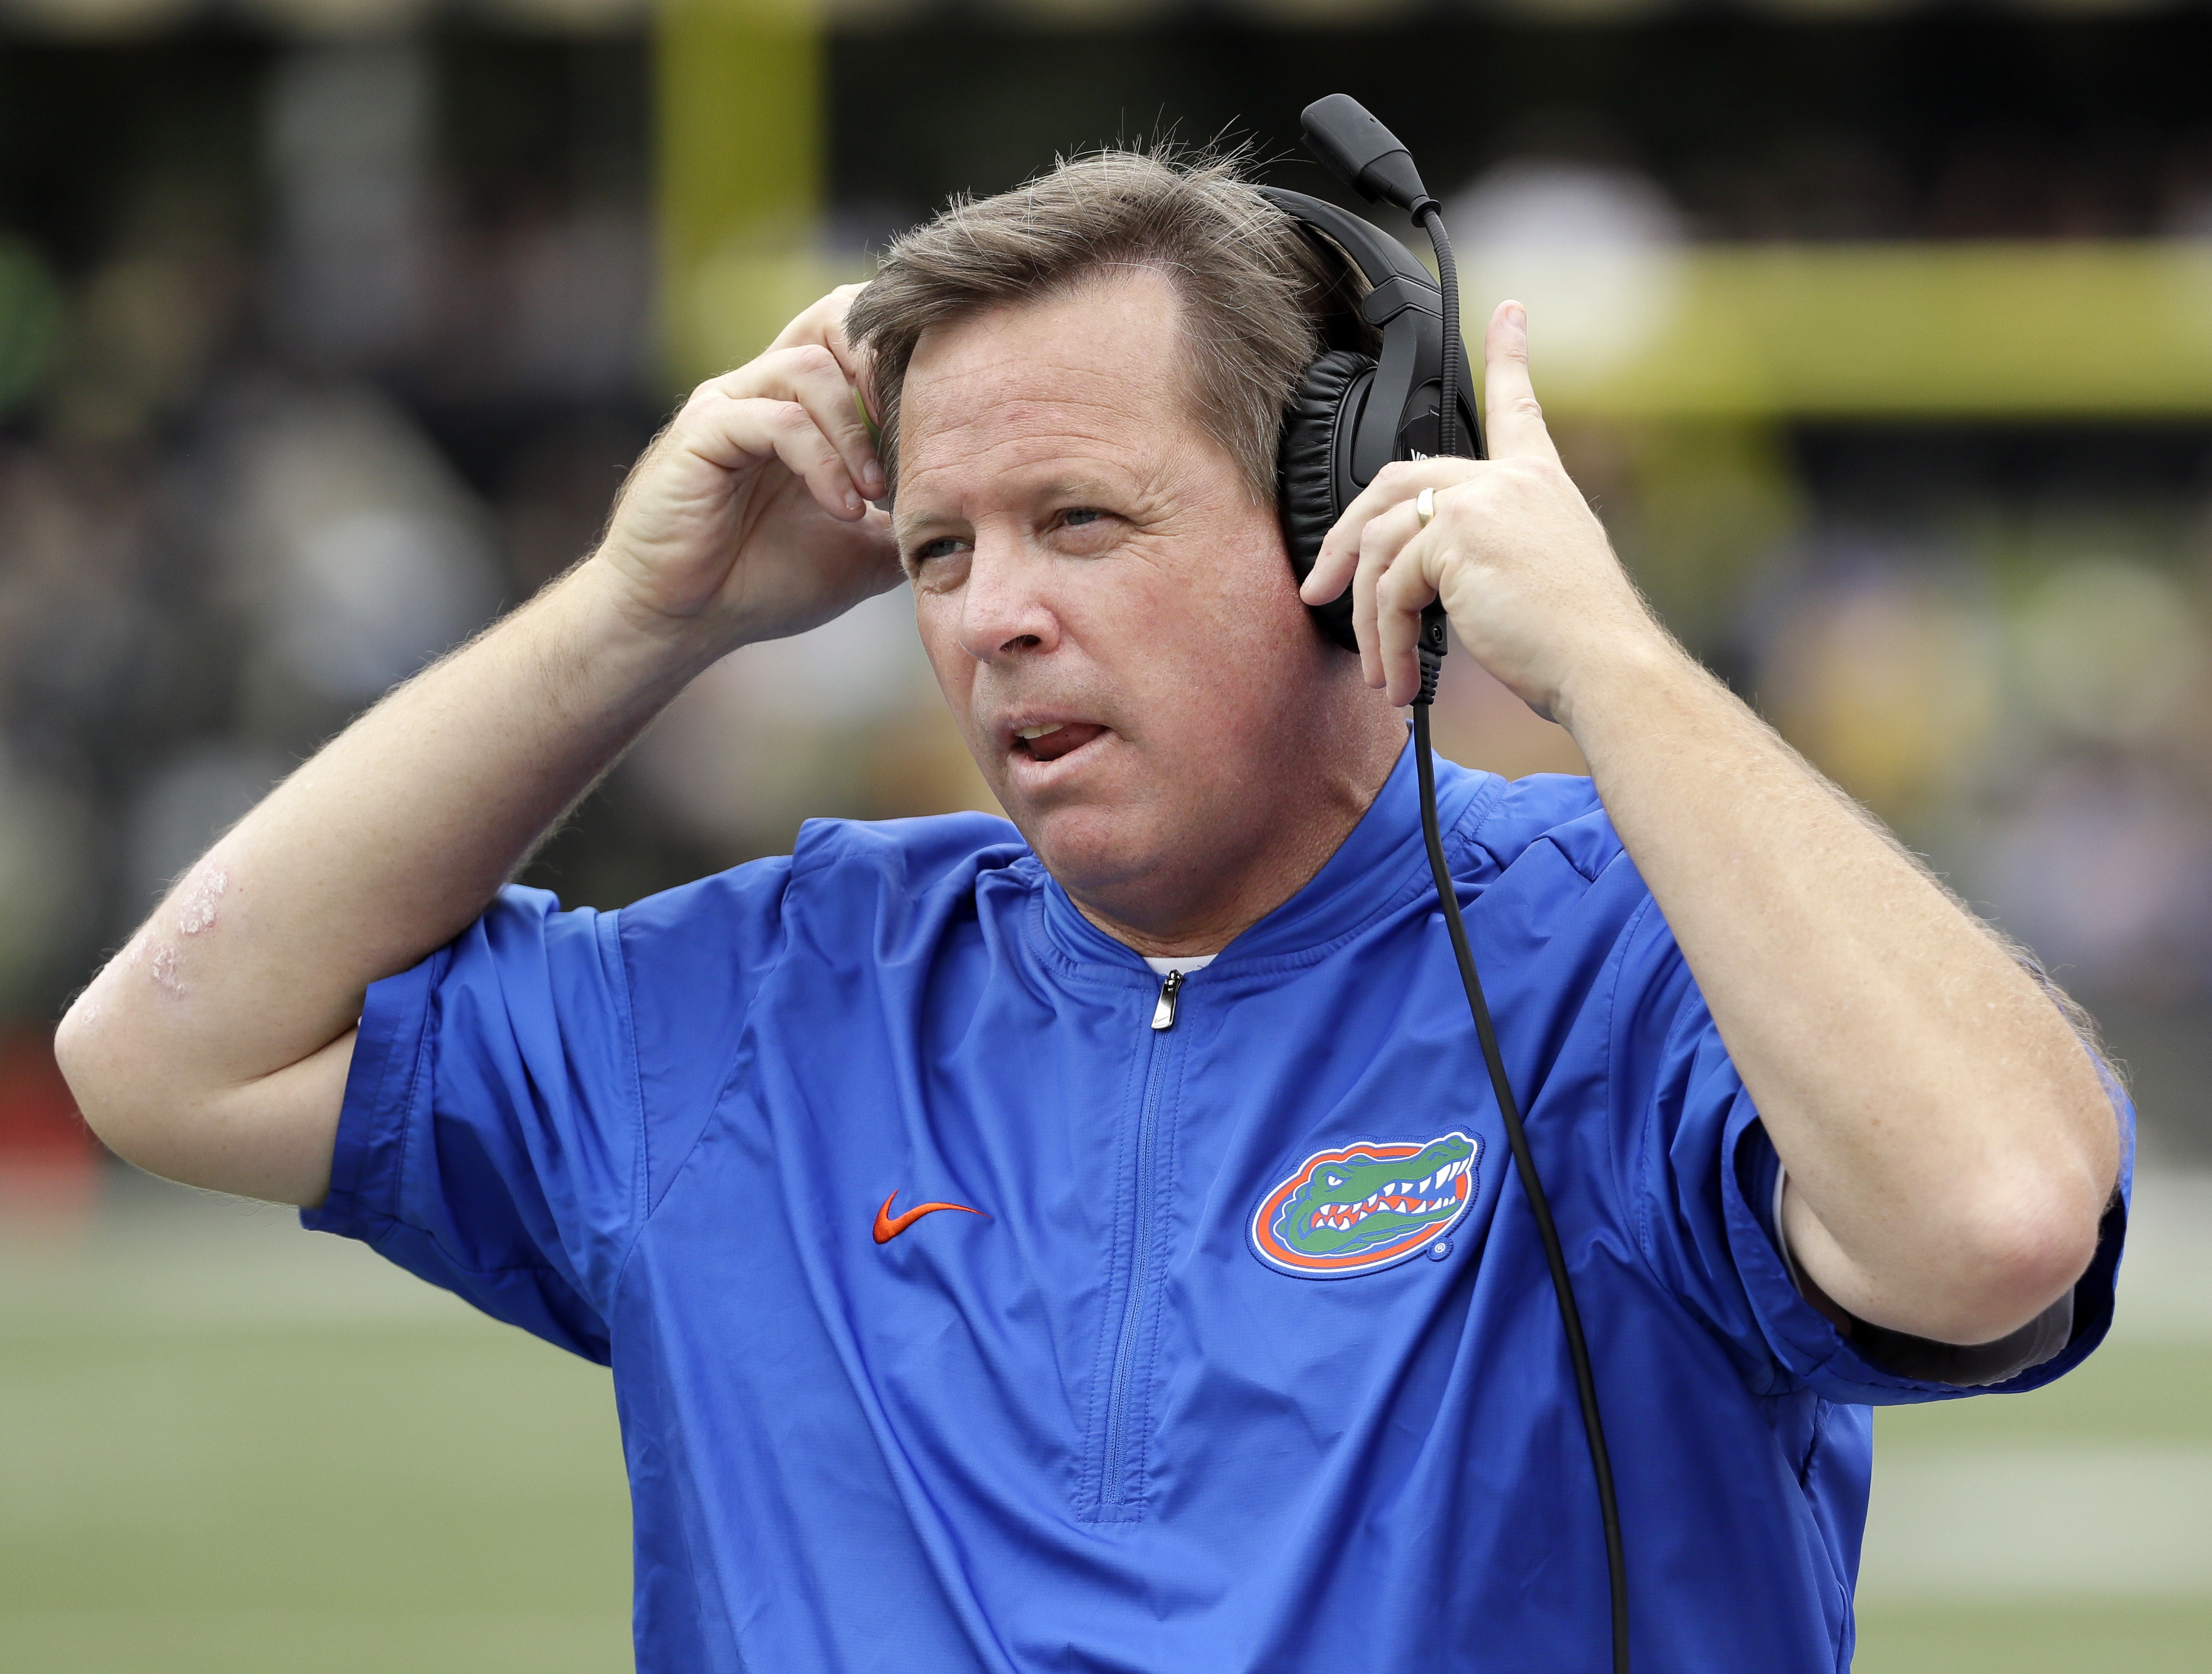 FILE - In this Oct. 1, 2016, file photo, Florida head coach Jim McElwain watches from the sideline in the second half of an NCAA college football game against Vanderbilt in Nashville, Tenn. Georgia head coach Kirby Smart and McElwain become close friends